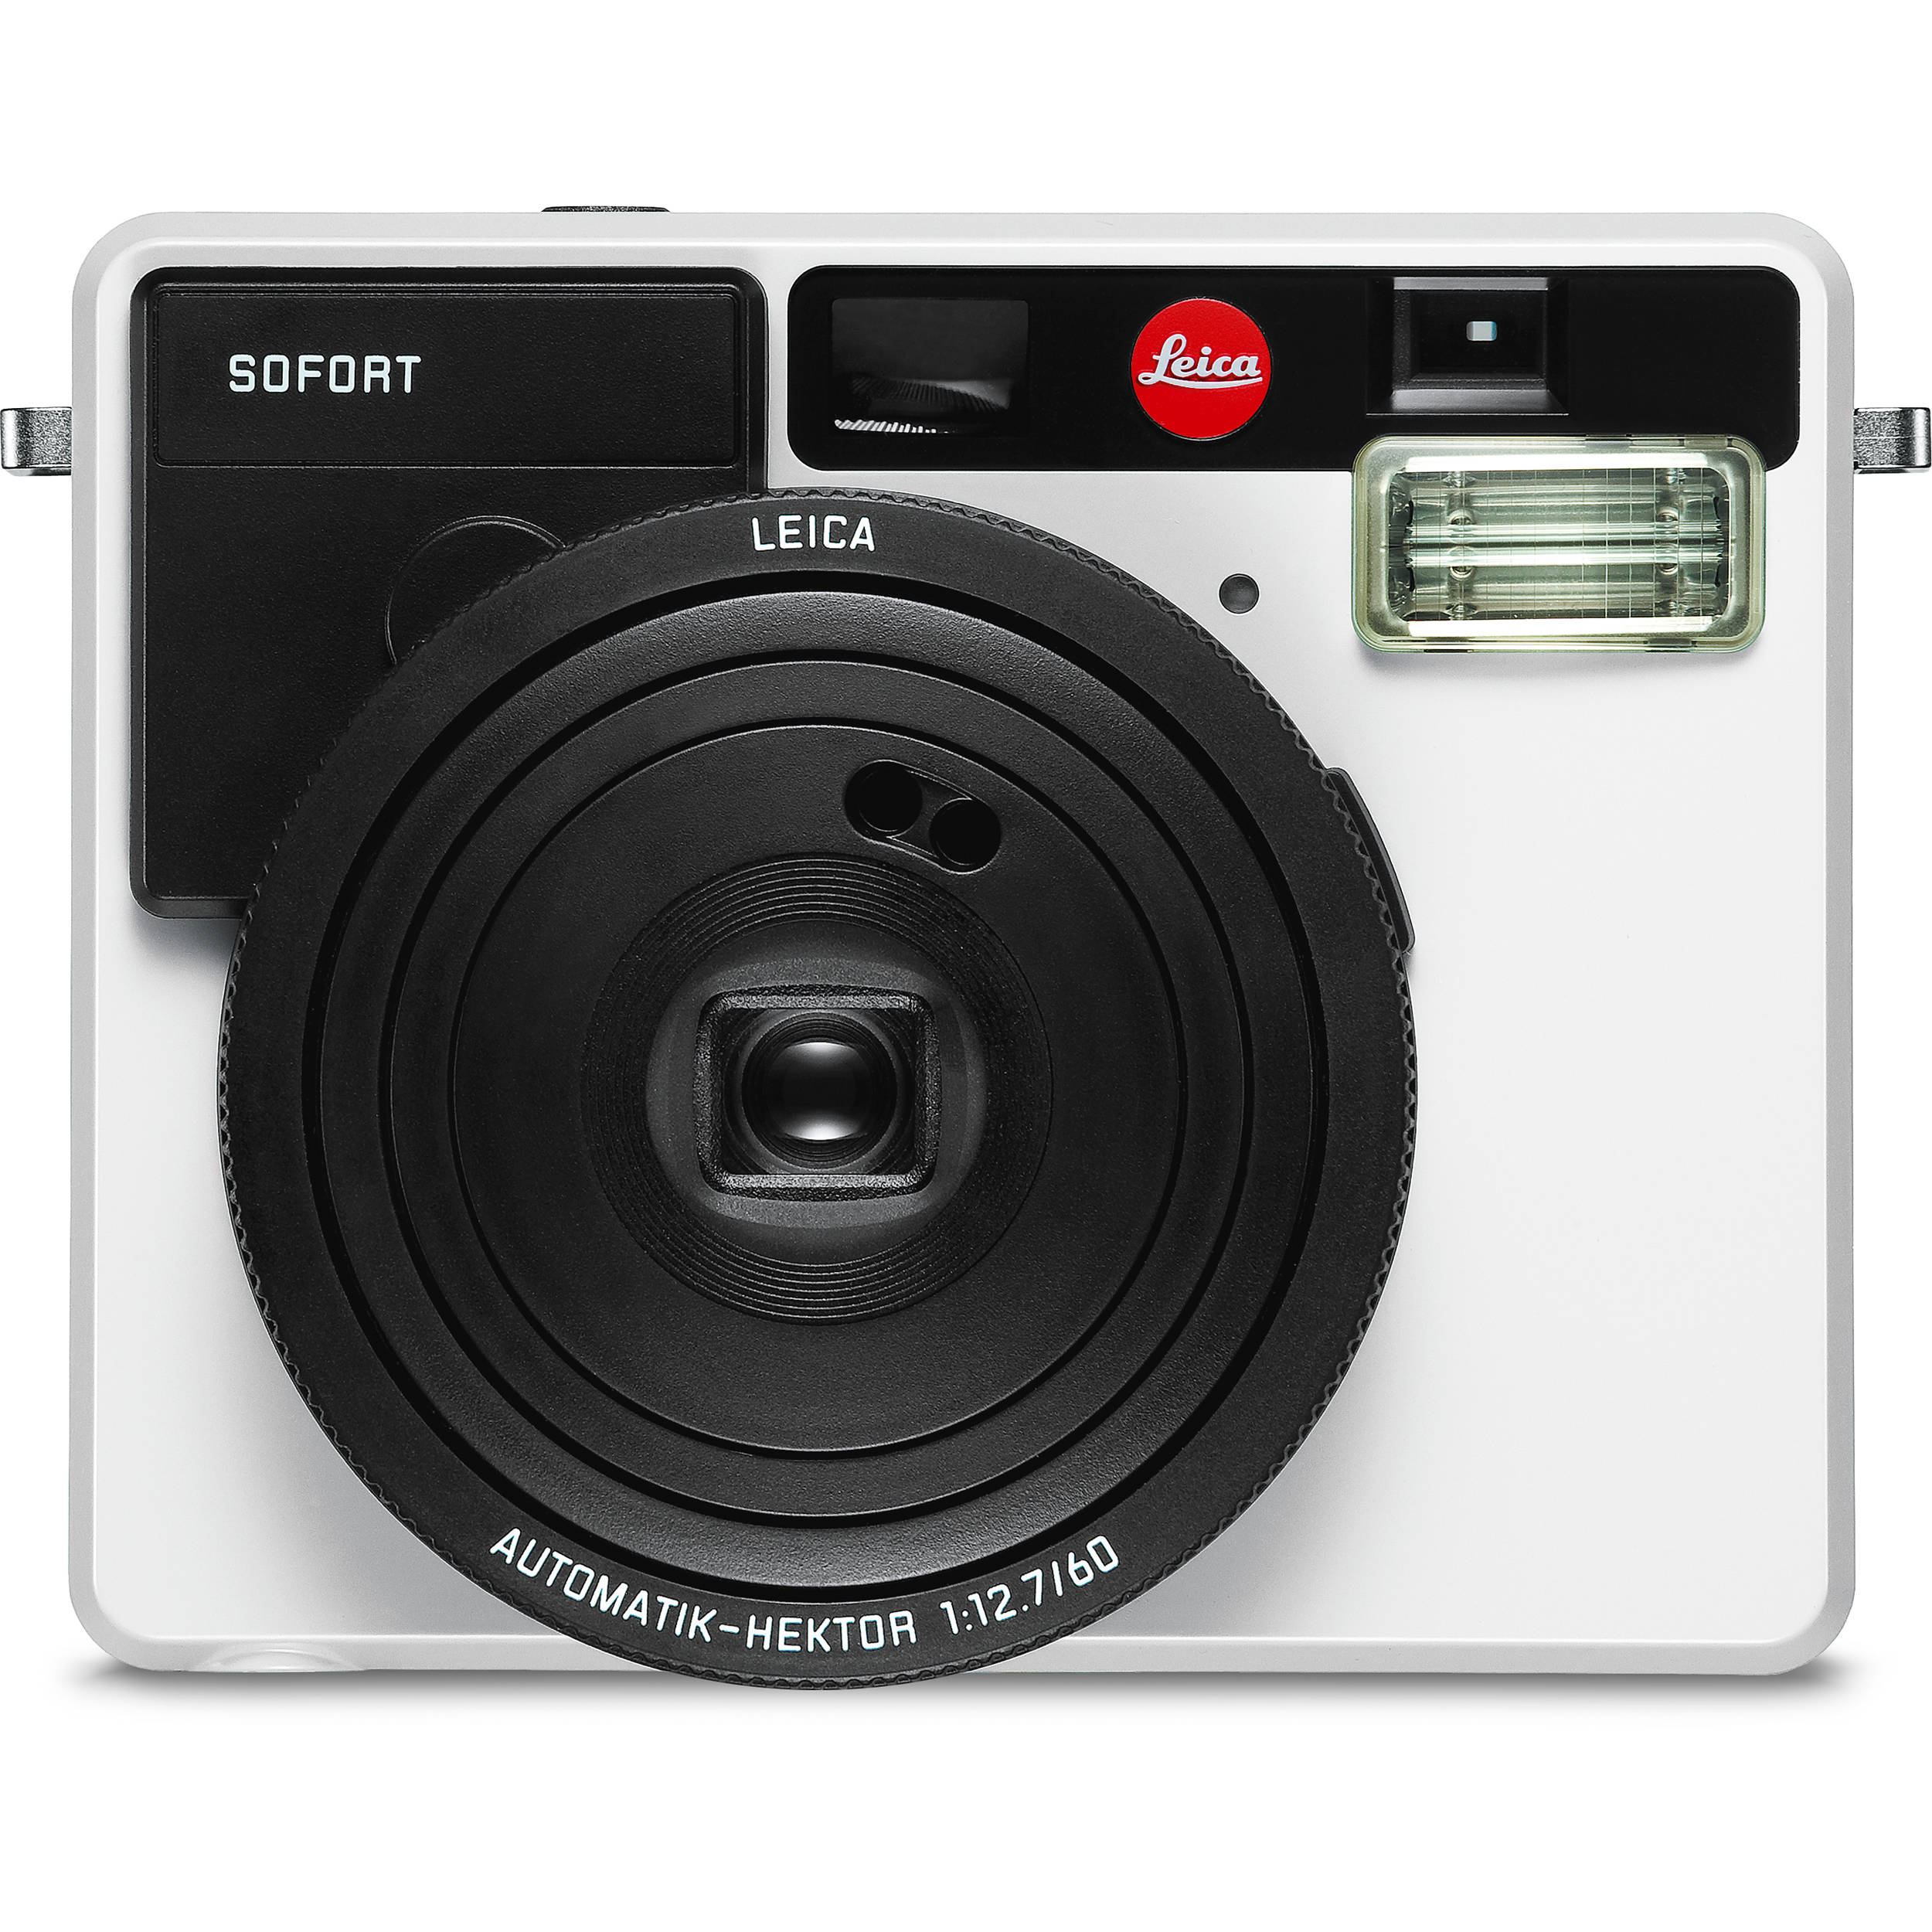 Favorite Leica Sofort Instant Film Camera Leica Sofort Instant Film Camera Photo Video Leica Film Camera Light Meter Leica Film Camera Buy dpreview Leica Film Camera